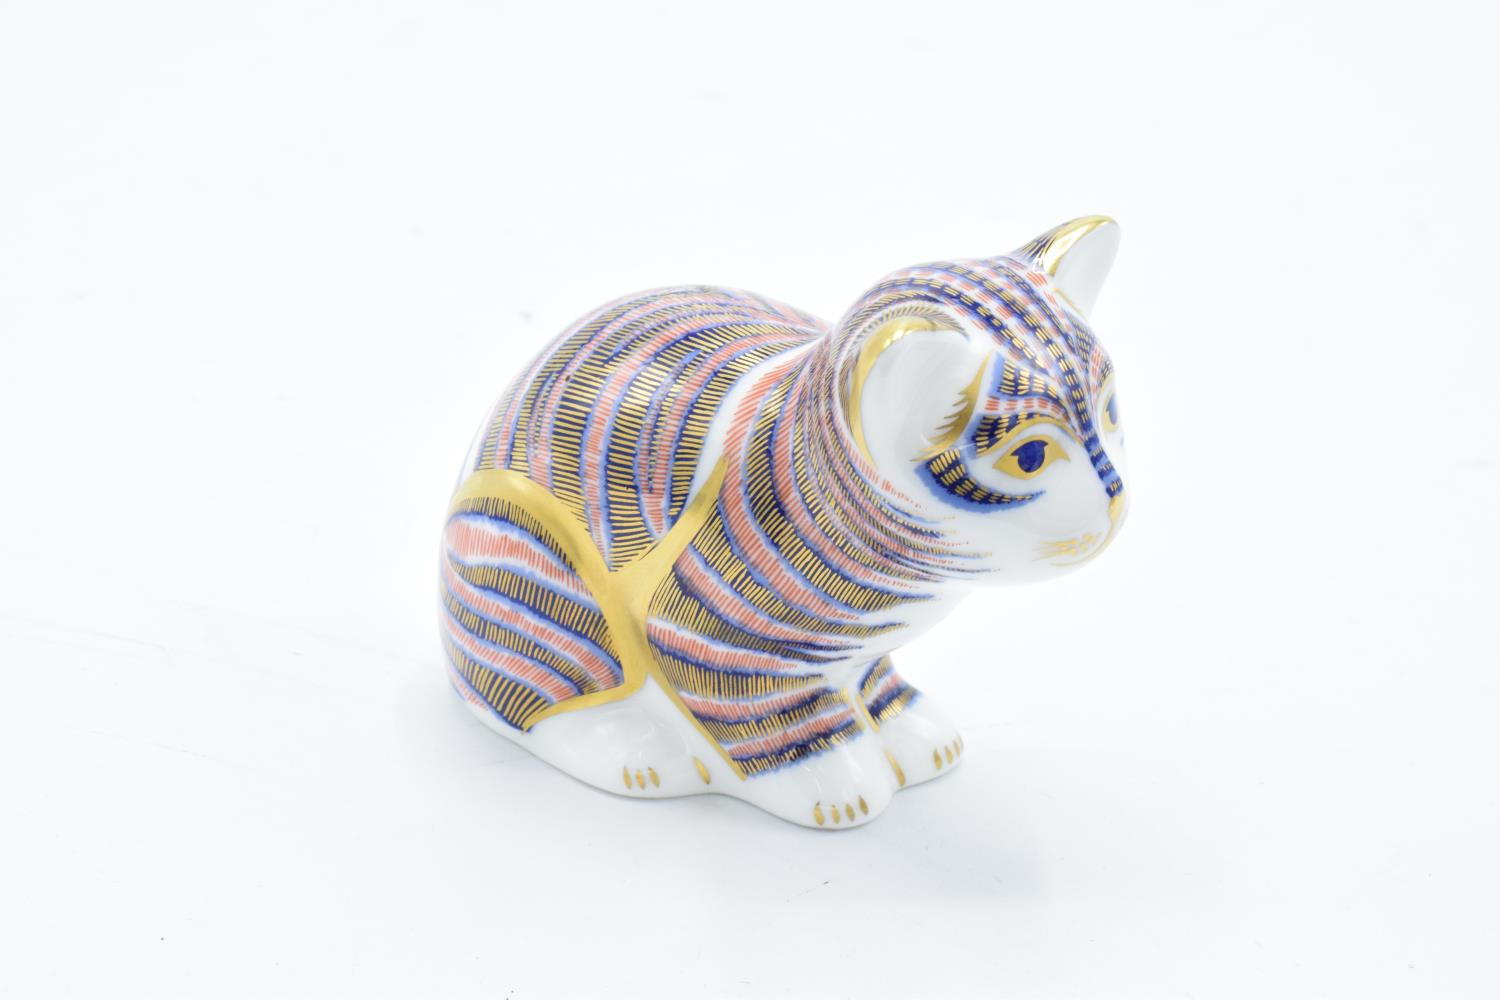 Royal Crown Derby paperweight in the form of a sitting kitten. In good condition with no obvious - Image 2 of 3